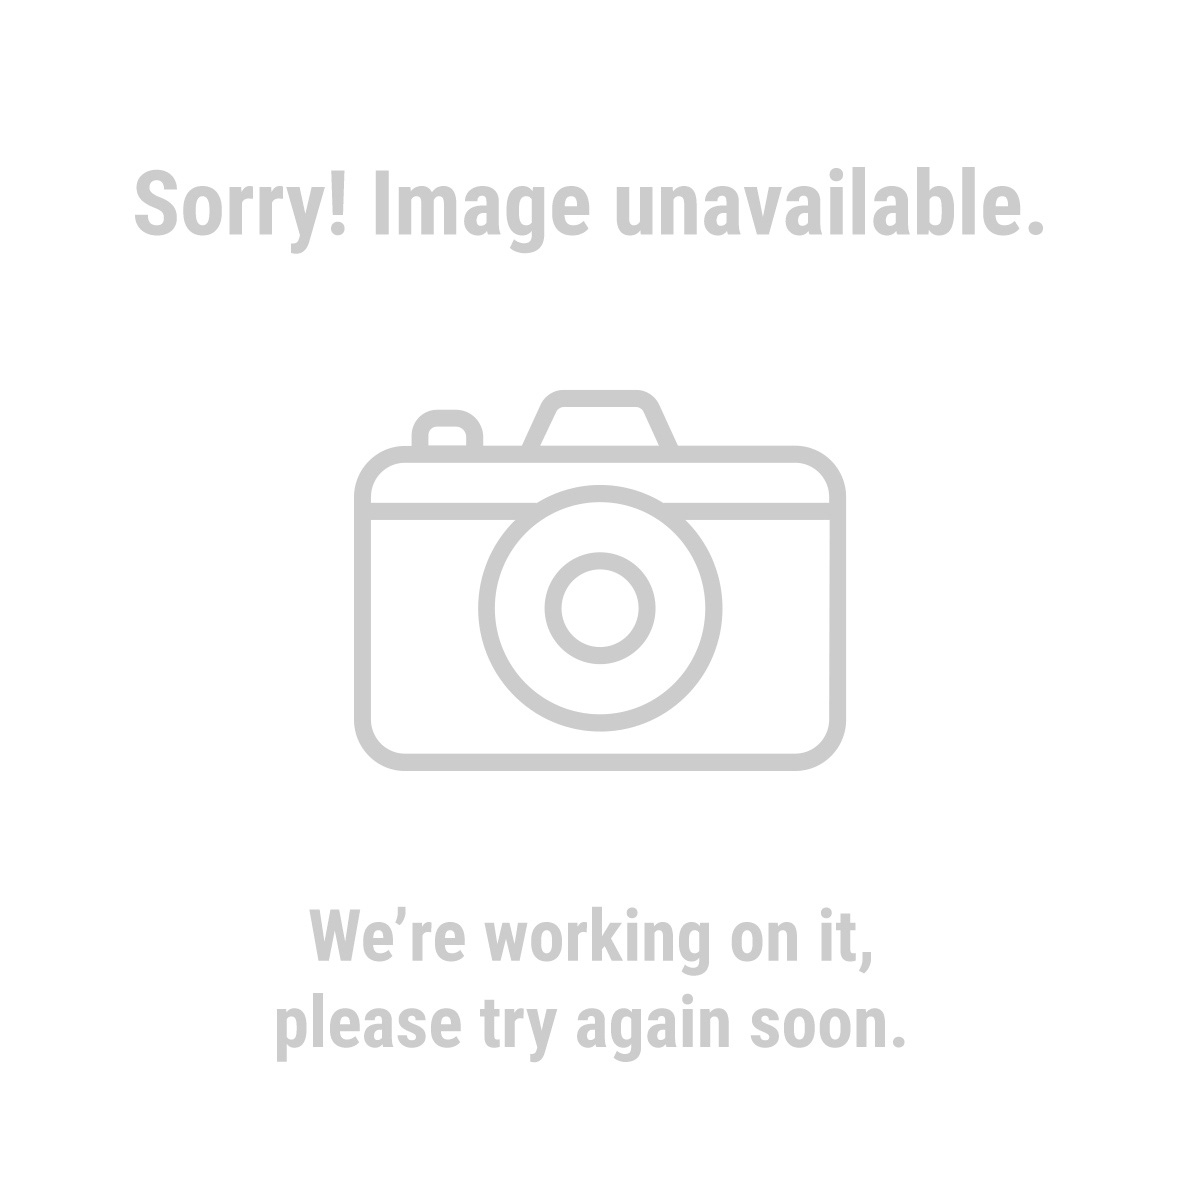 Pittsburgh 8832 3 Piece Three-Jaw Puller Set